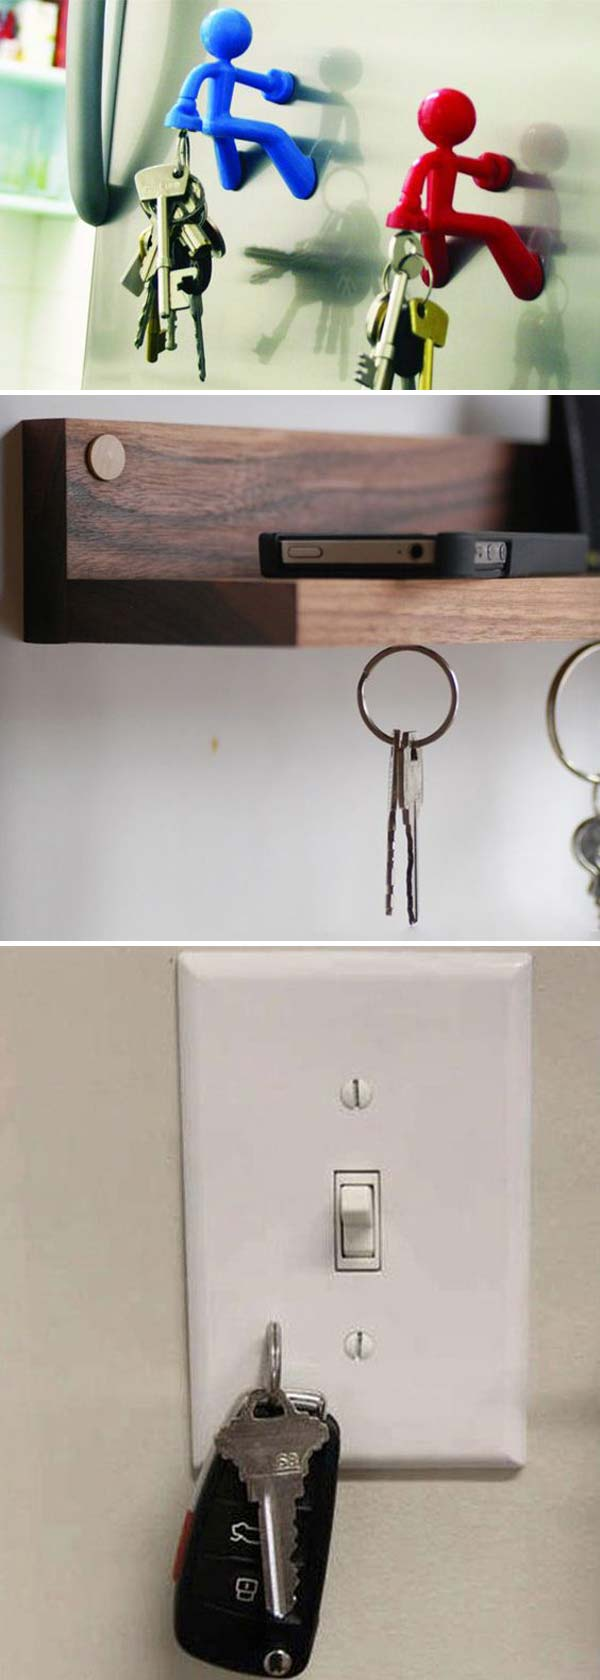 kitchen spice rack lighting melbourne 15 diy magnet projects will make your life much fun and ...